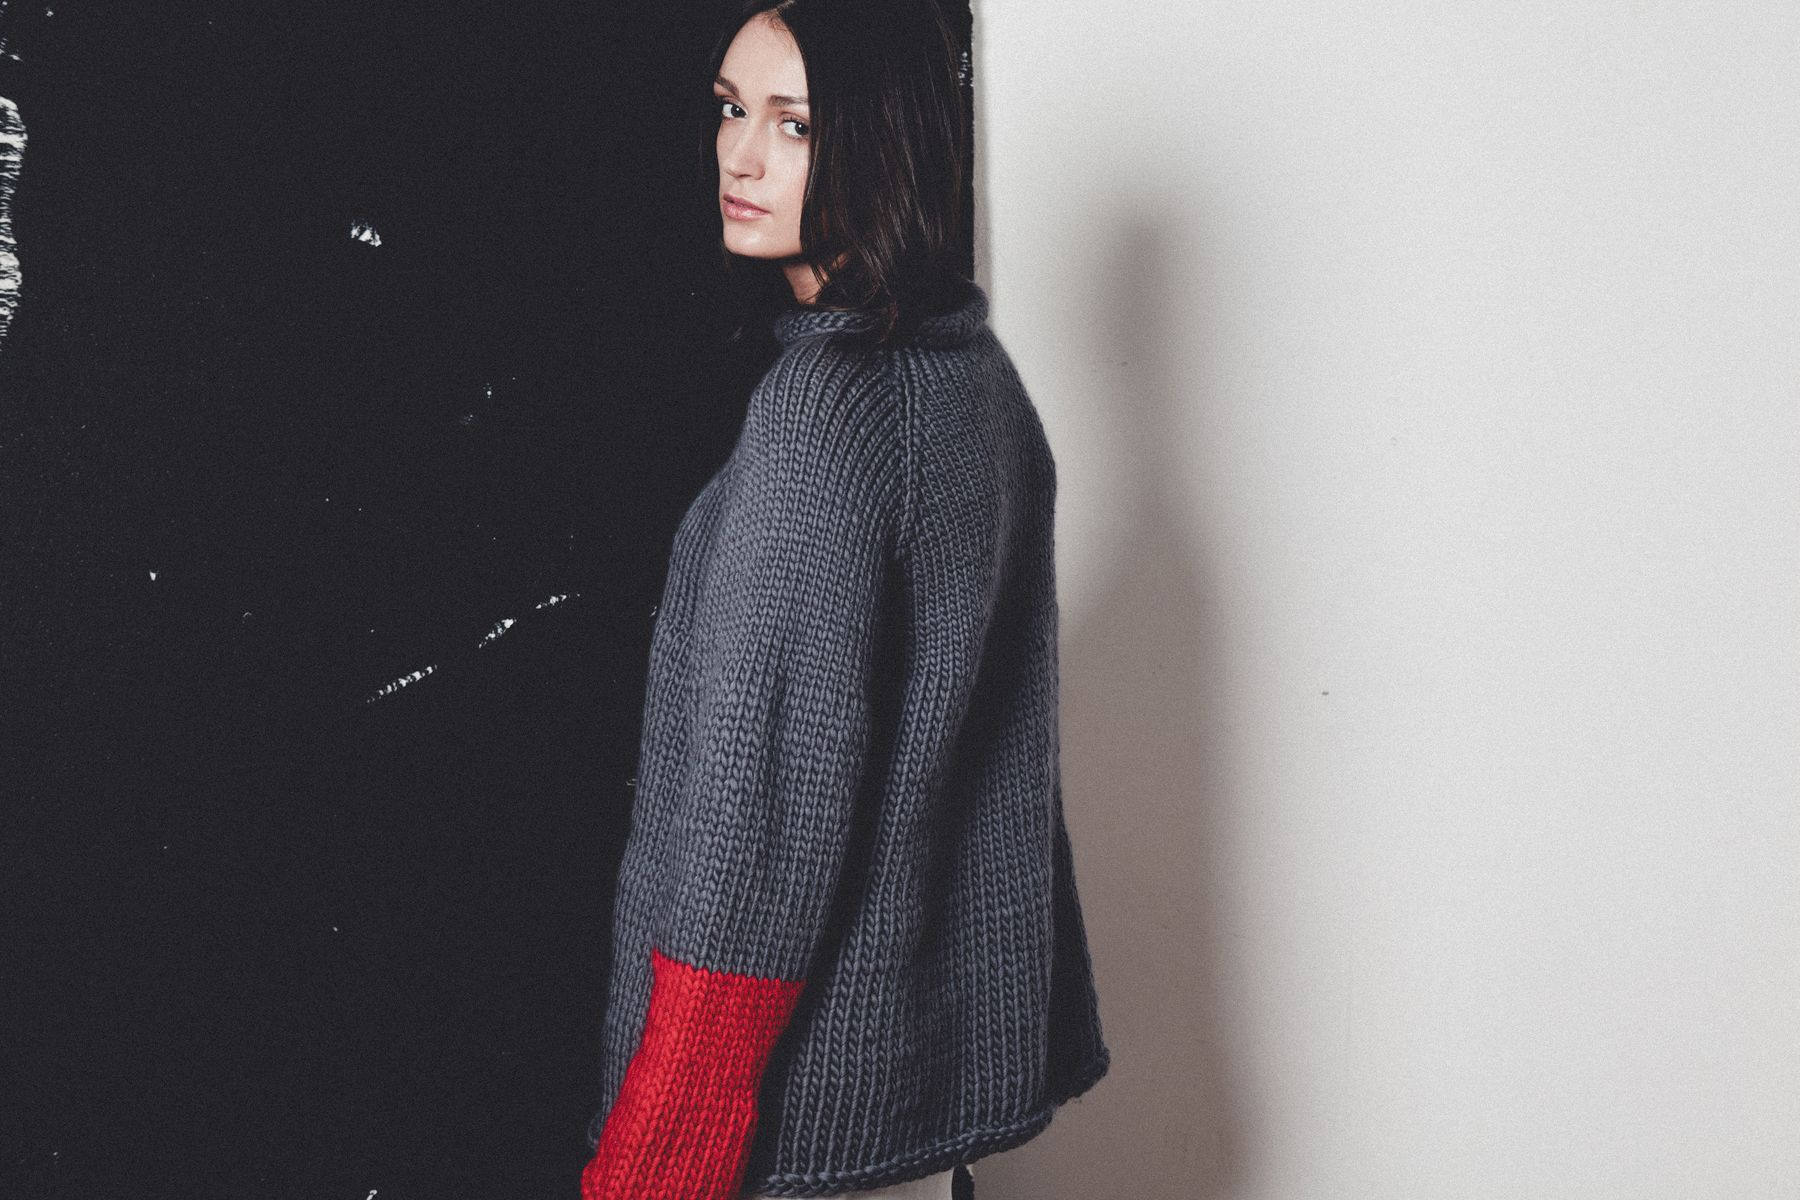 AW14 Lookbook for Confined Space Ethical fashion - Hand knitted & hand spun yarn, oversize colour pop jumper. Made in the UK, by The New Yarn Company.  Sustainable Style from independent designers